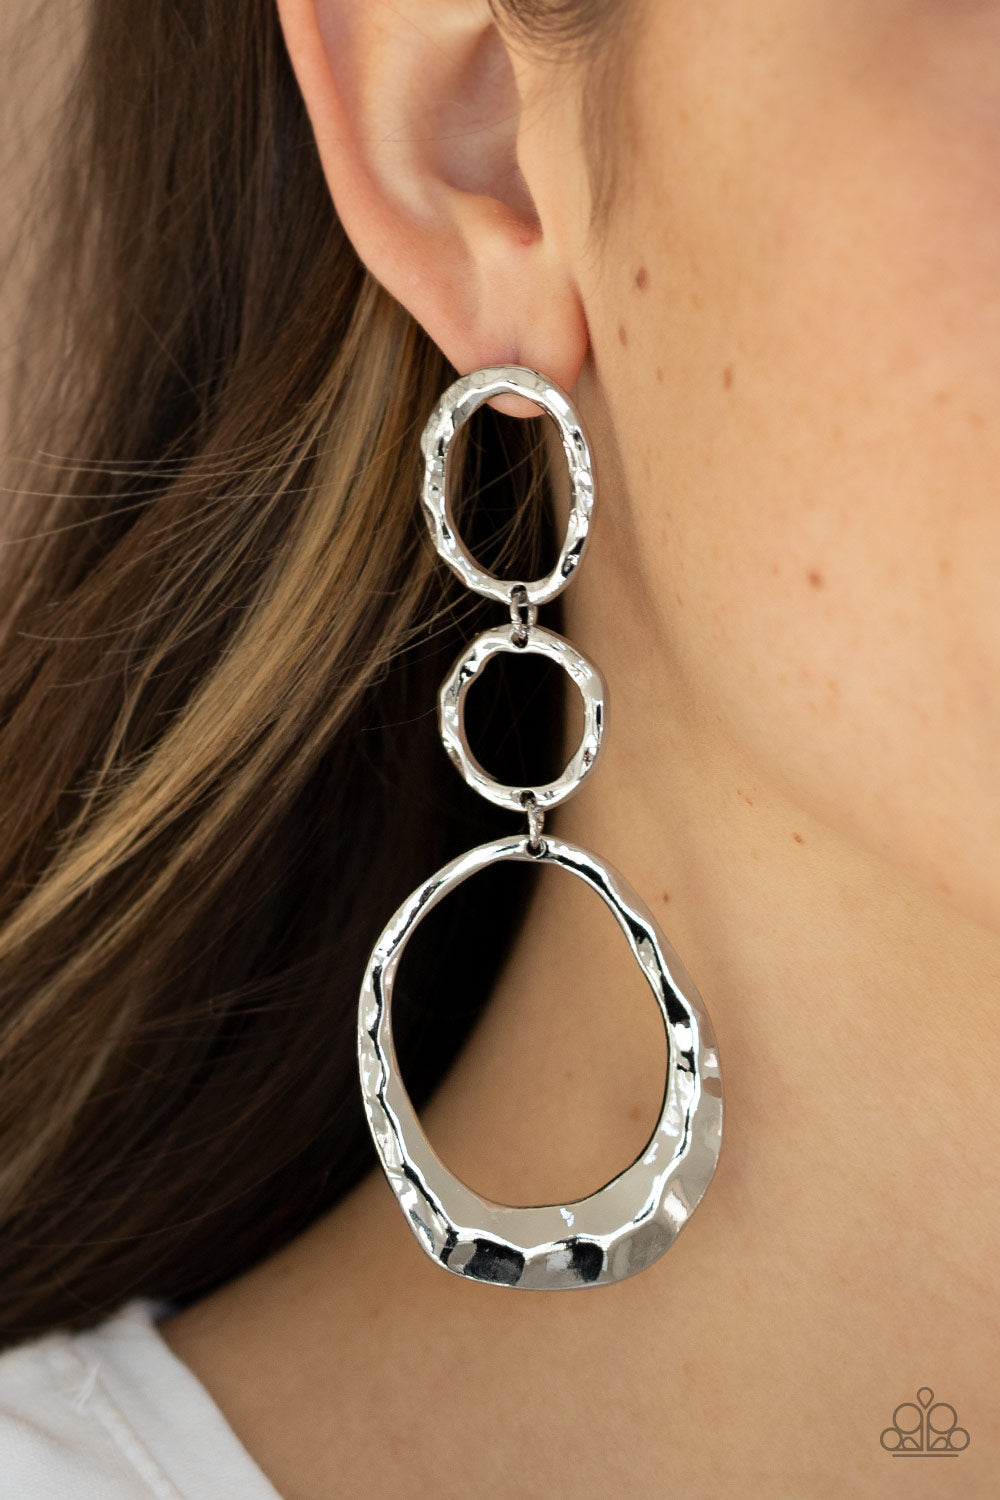 Paparazzi Accessories Radically Rippled - Silver Earrings - Lady T Accessories